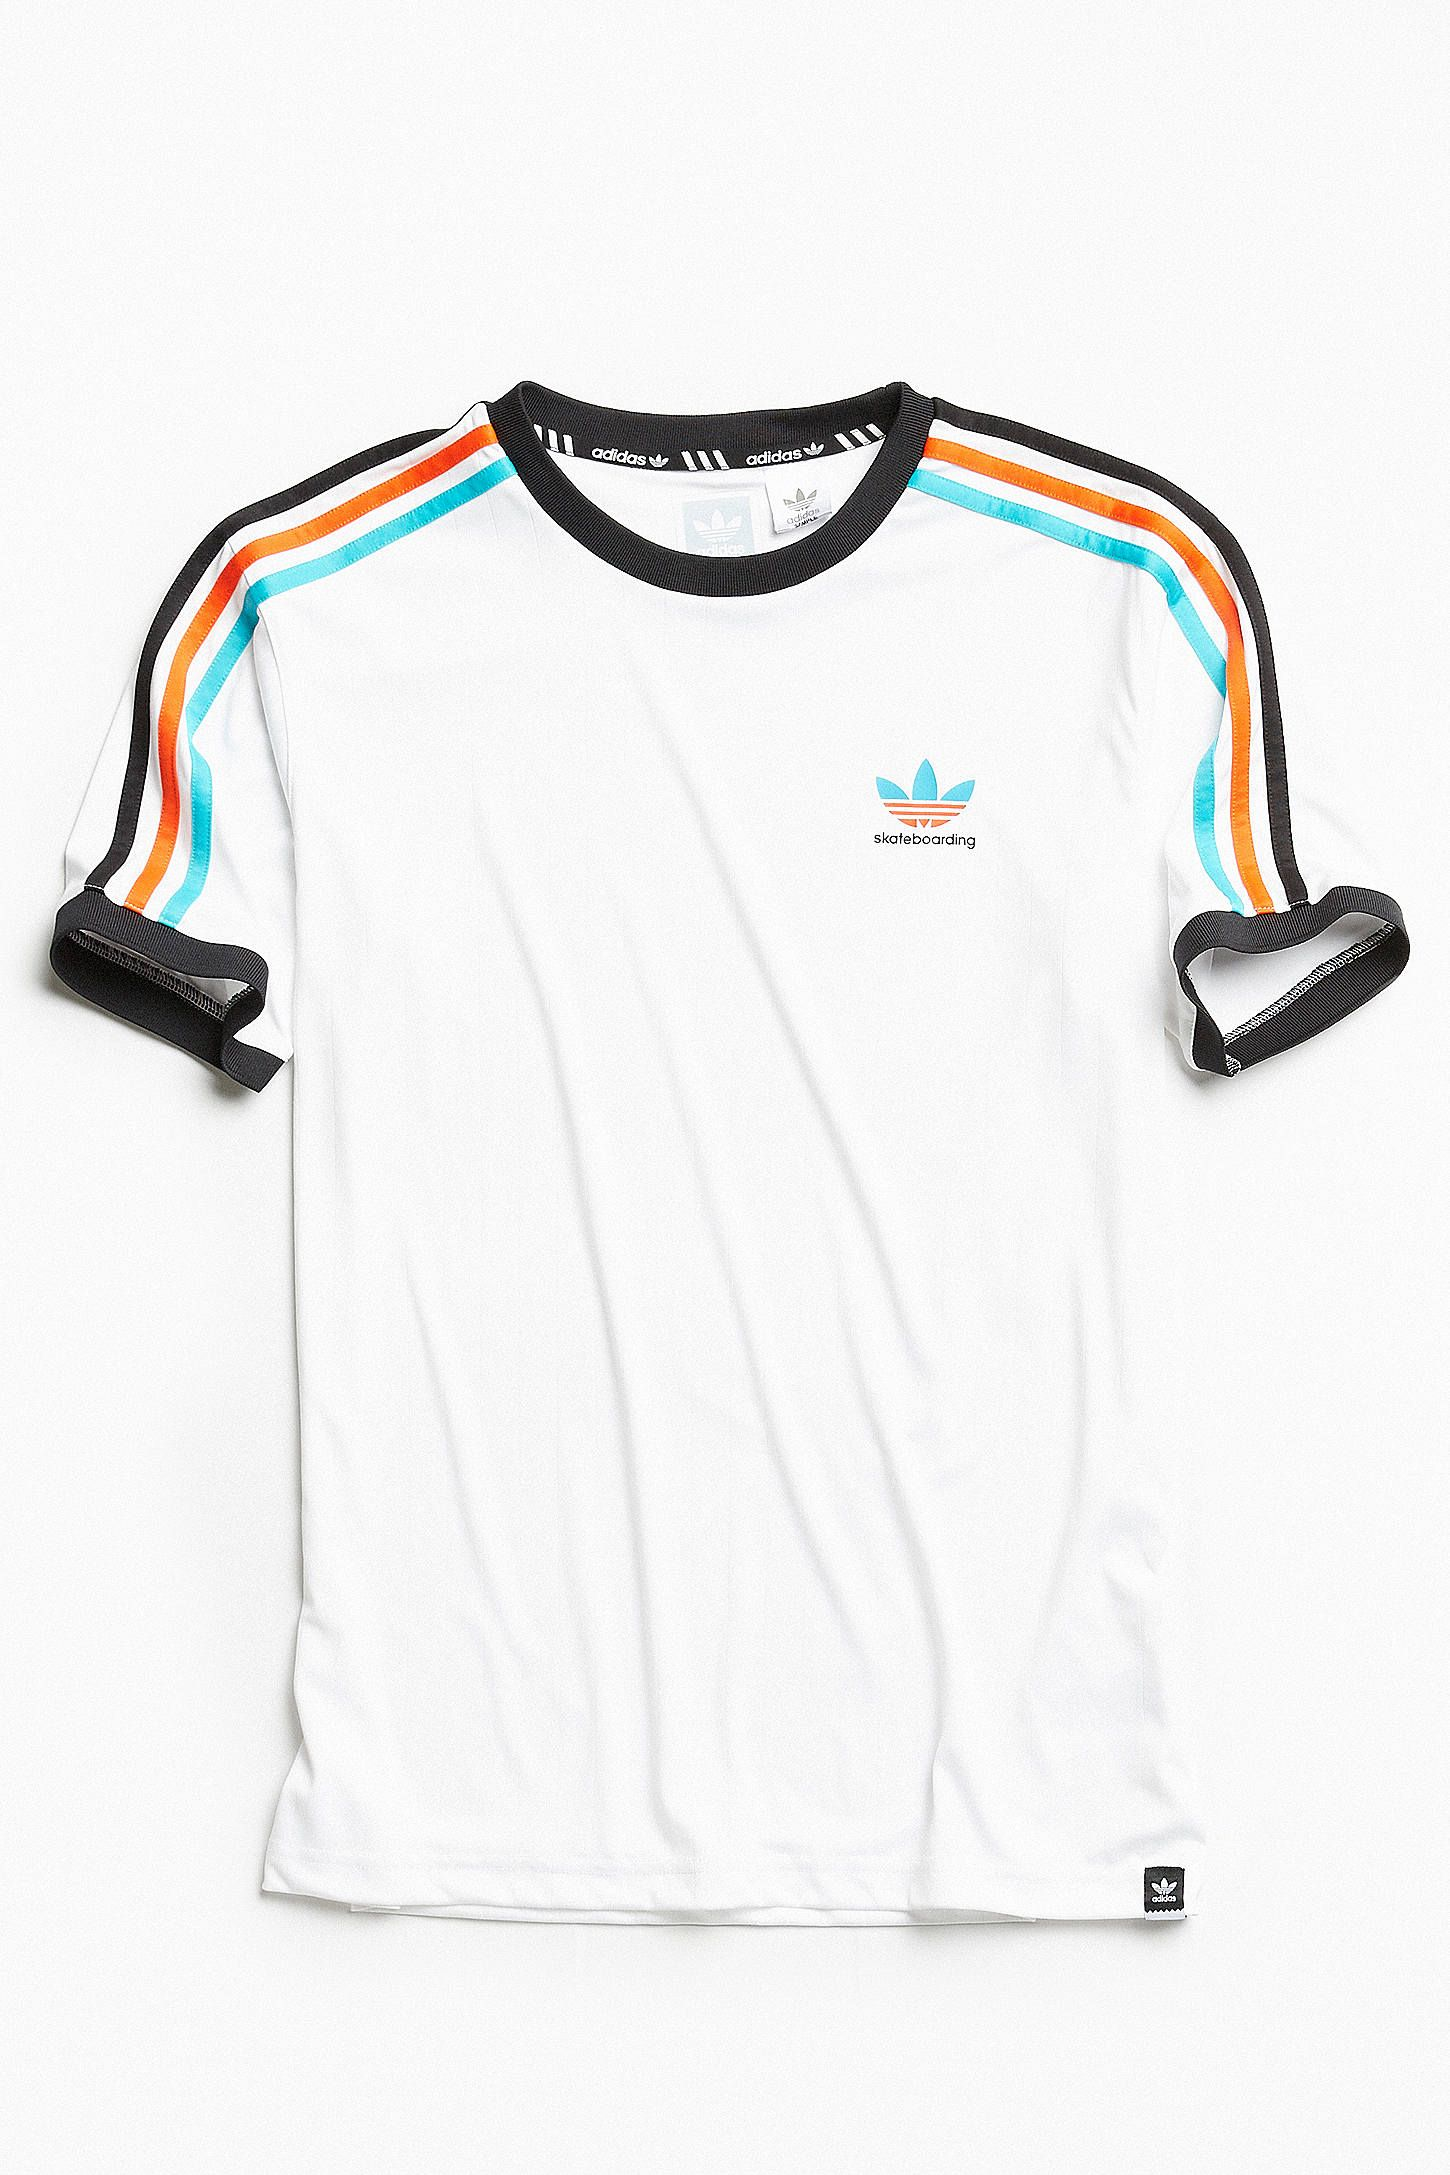 b36962626 adidas Skateboarding Club Jersey Tee | Stuff to Buy | Adidas, Mens ...